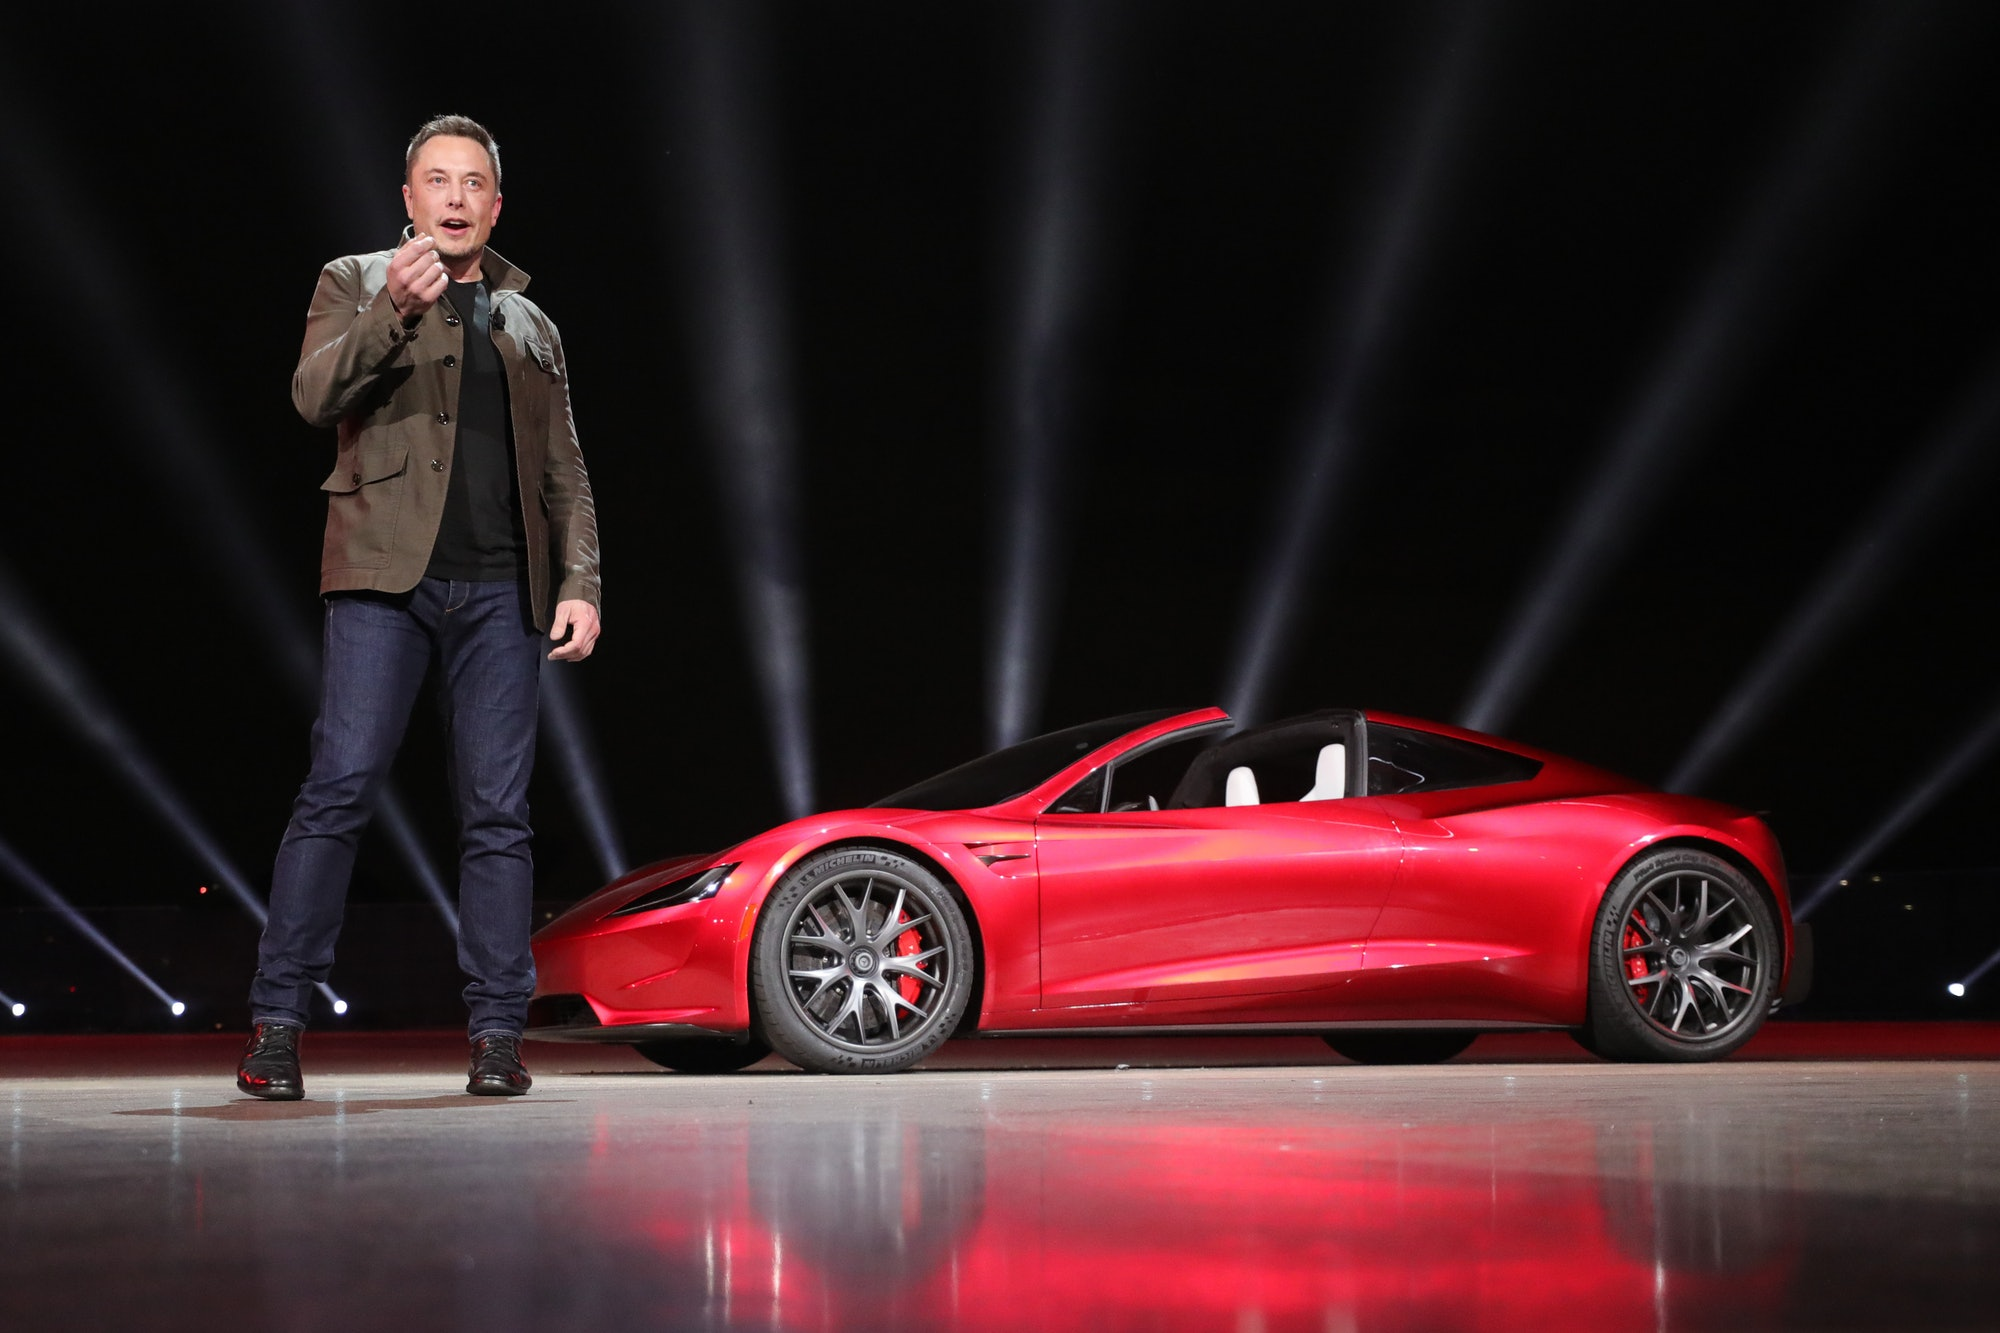 Elon Musk at the Tesla Semi event in November 2018, where he surprisingly debuted the next-generation Tesla Roadster.